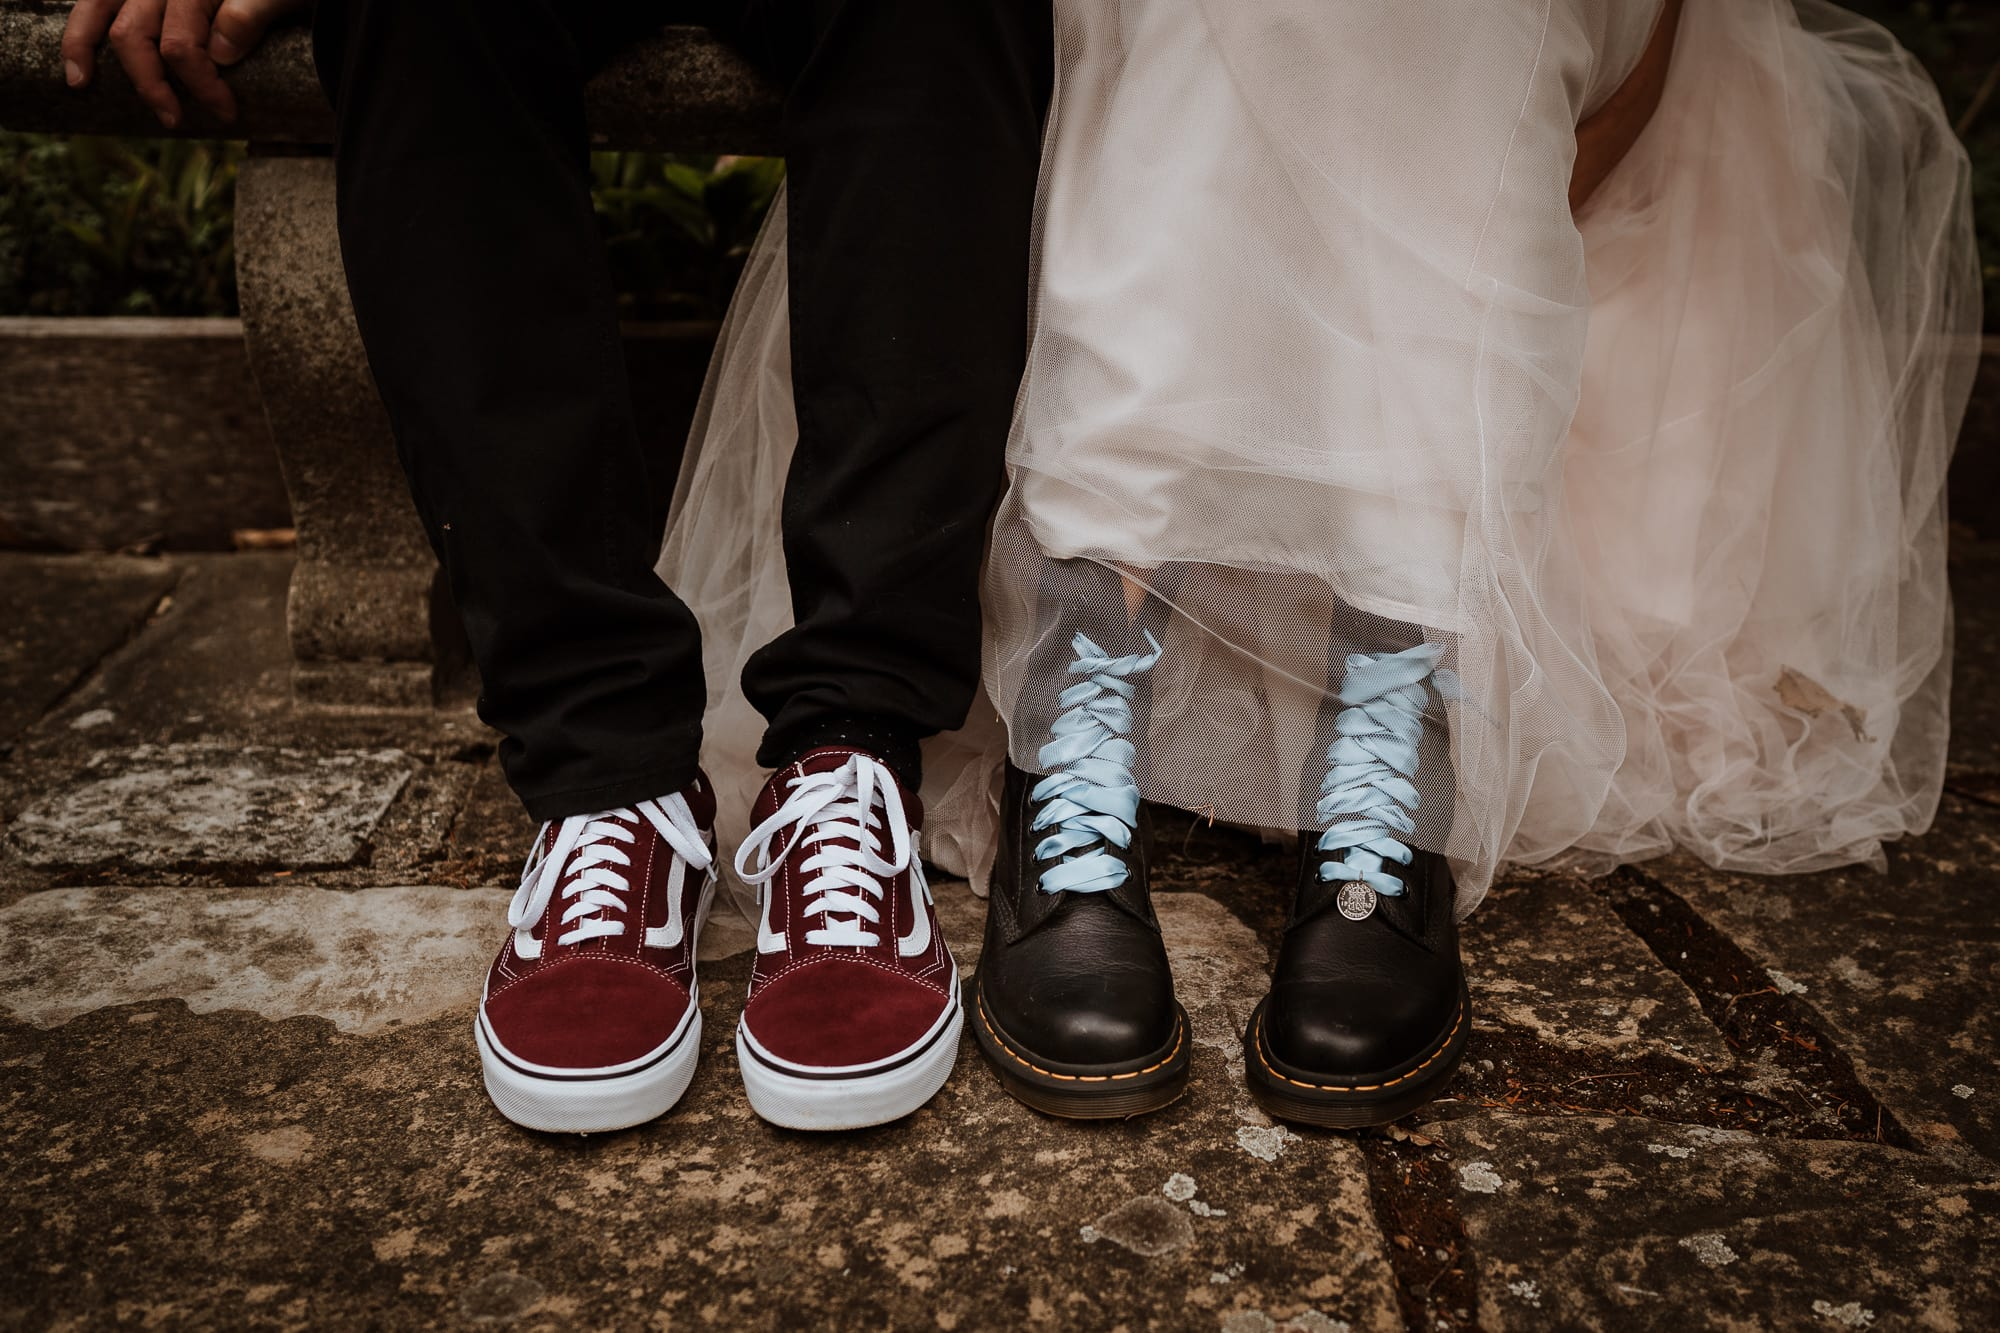 Bride in Docmarten boots and Groom in Vans